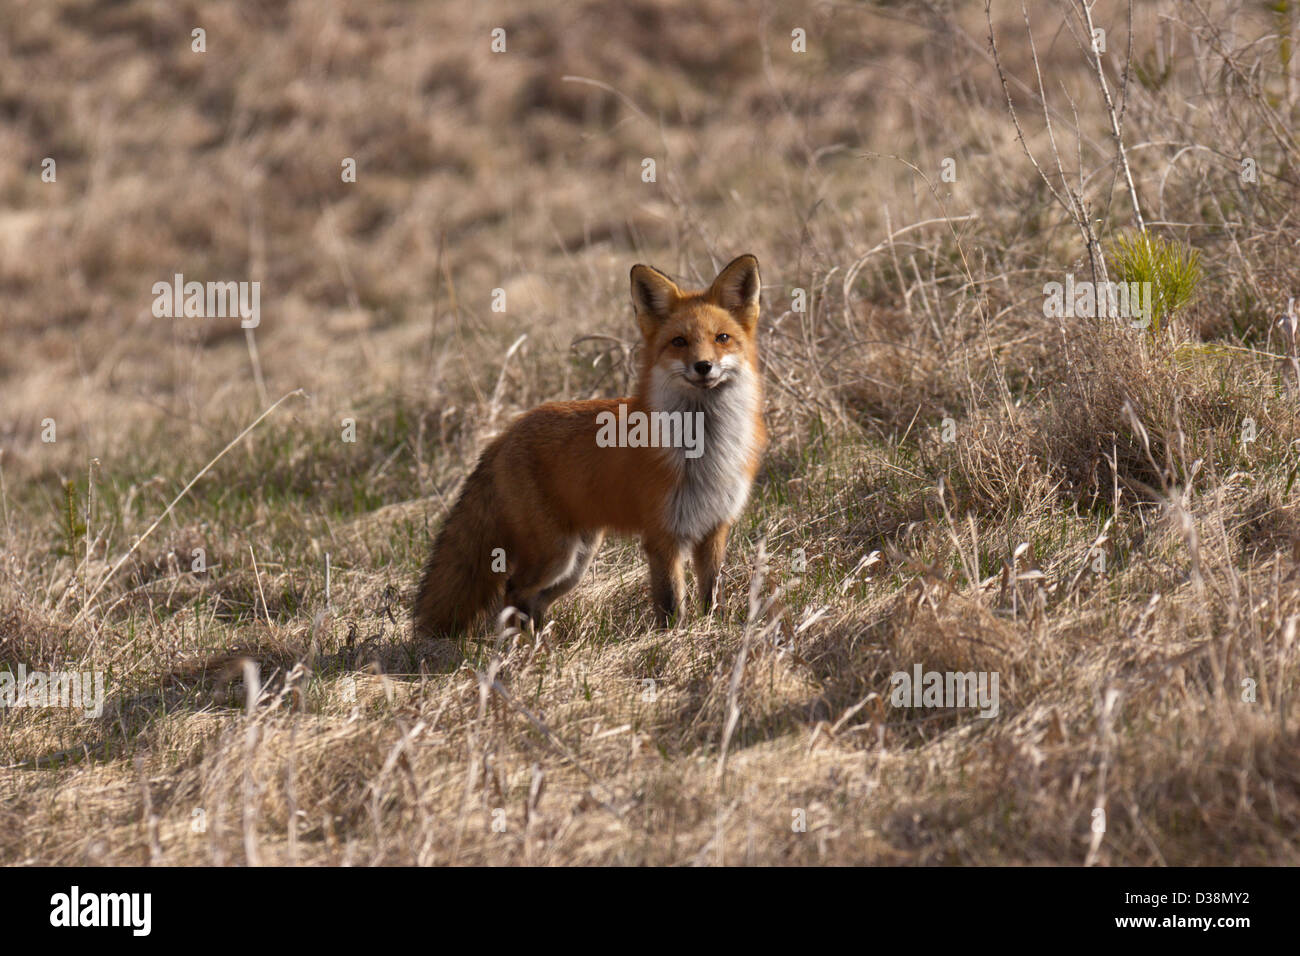 ref fox mammal cute wild country - Stock Image